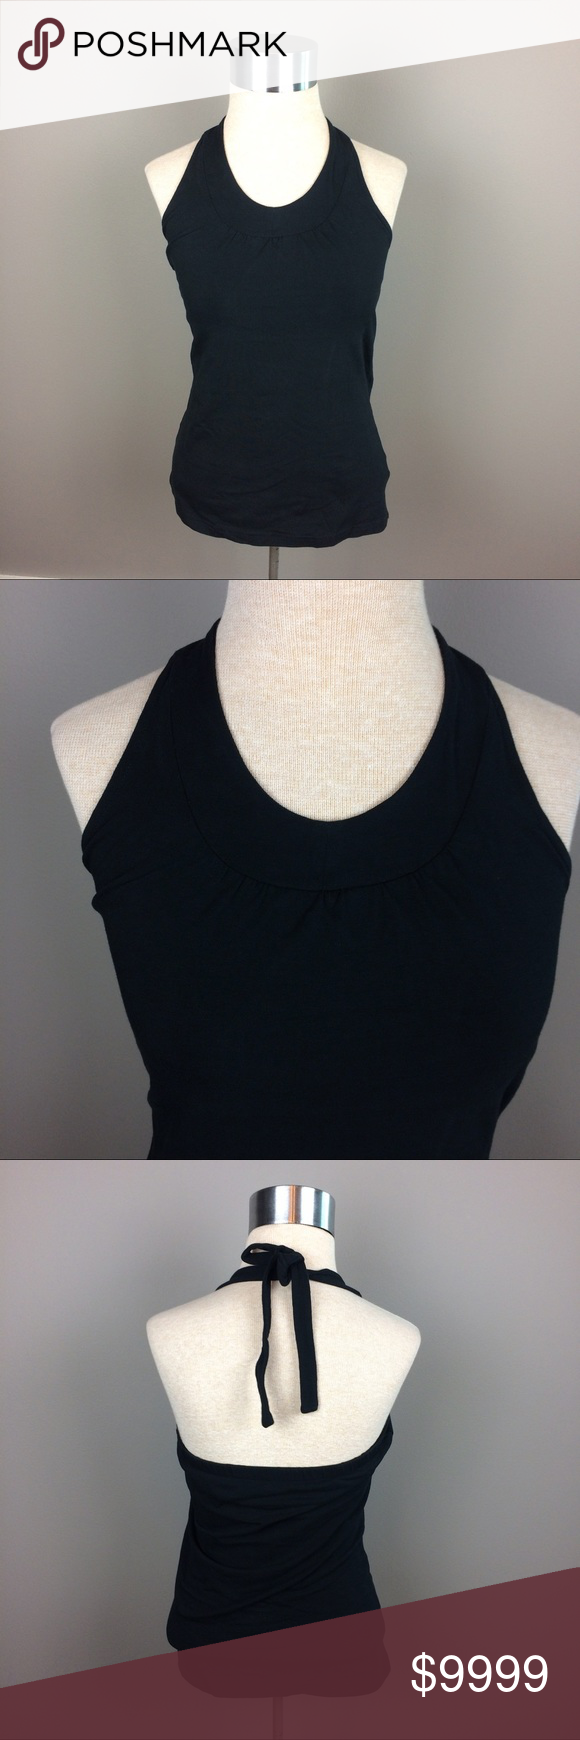 Bamboo Traders black halter neck top Details coming soon Bamboo Traders Tops Tank Tops